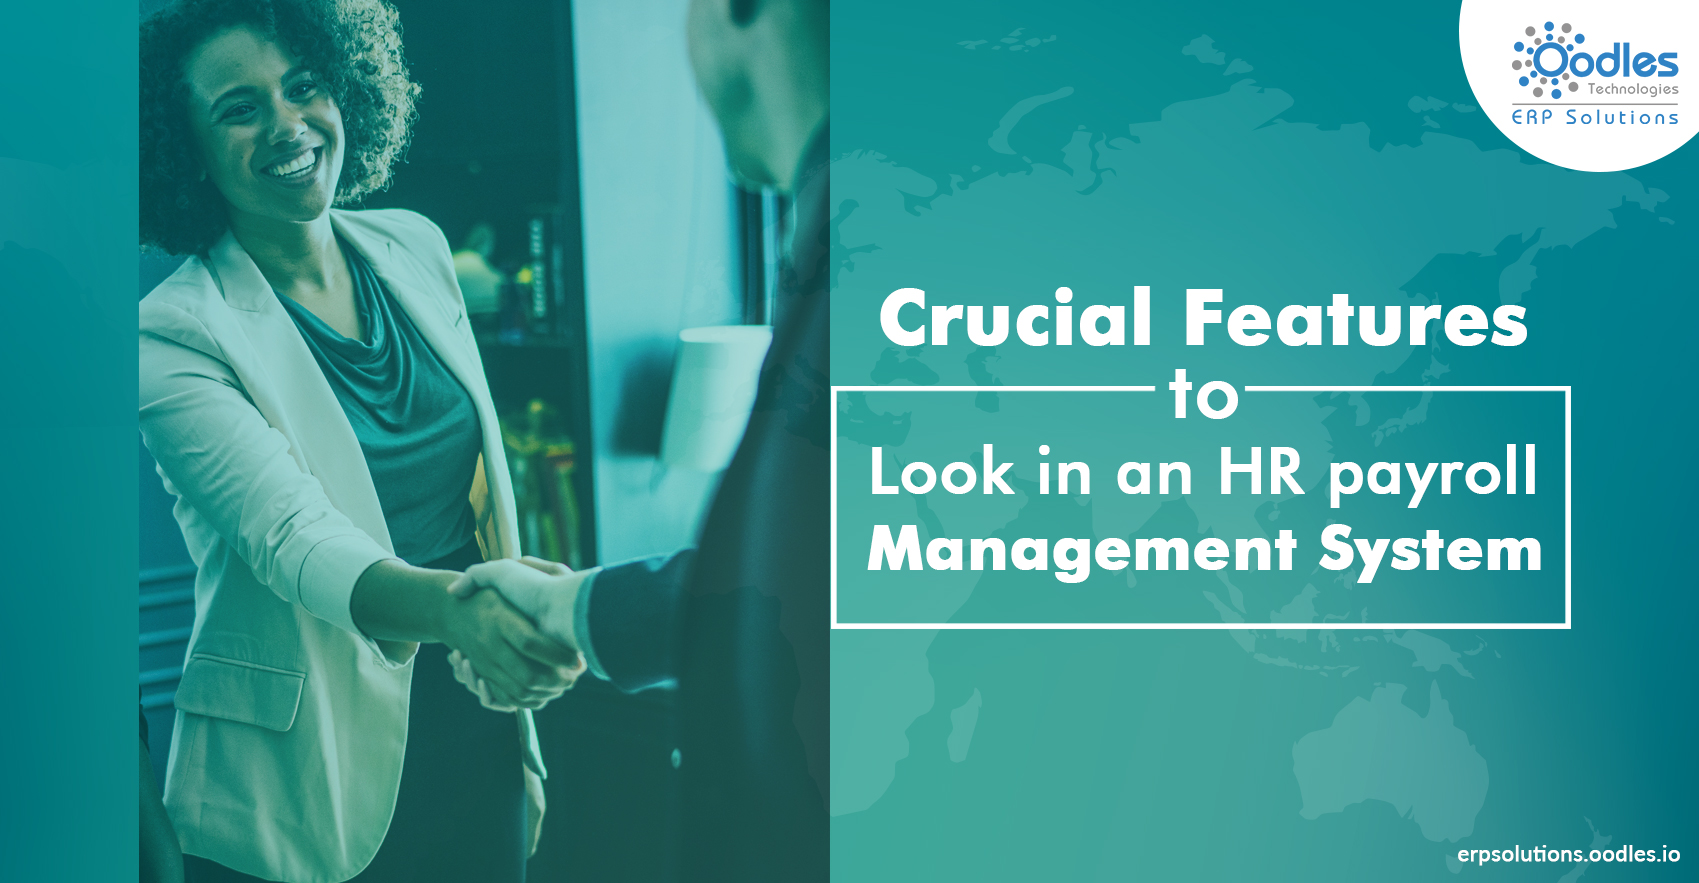 HR payroll management system: Crucial features to look for